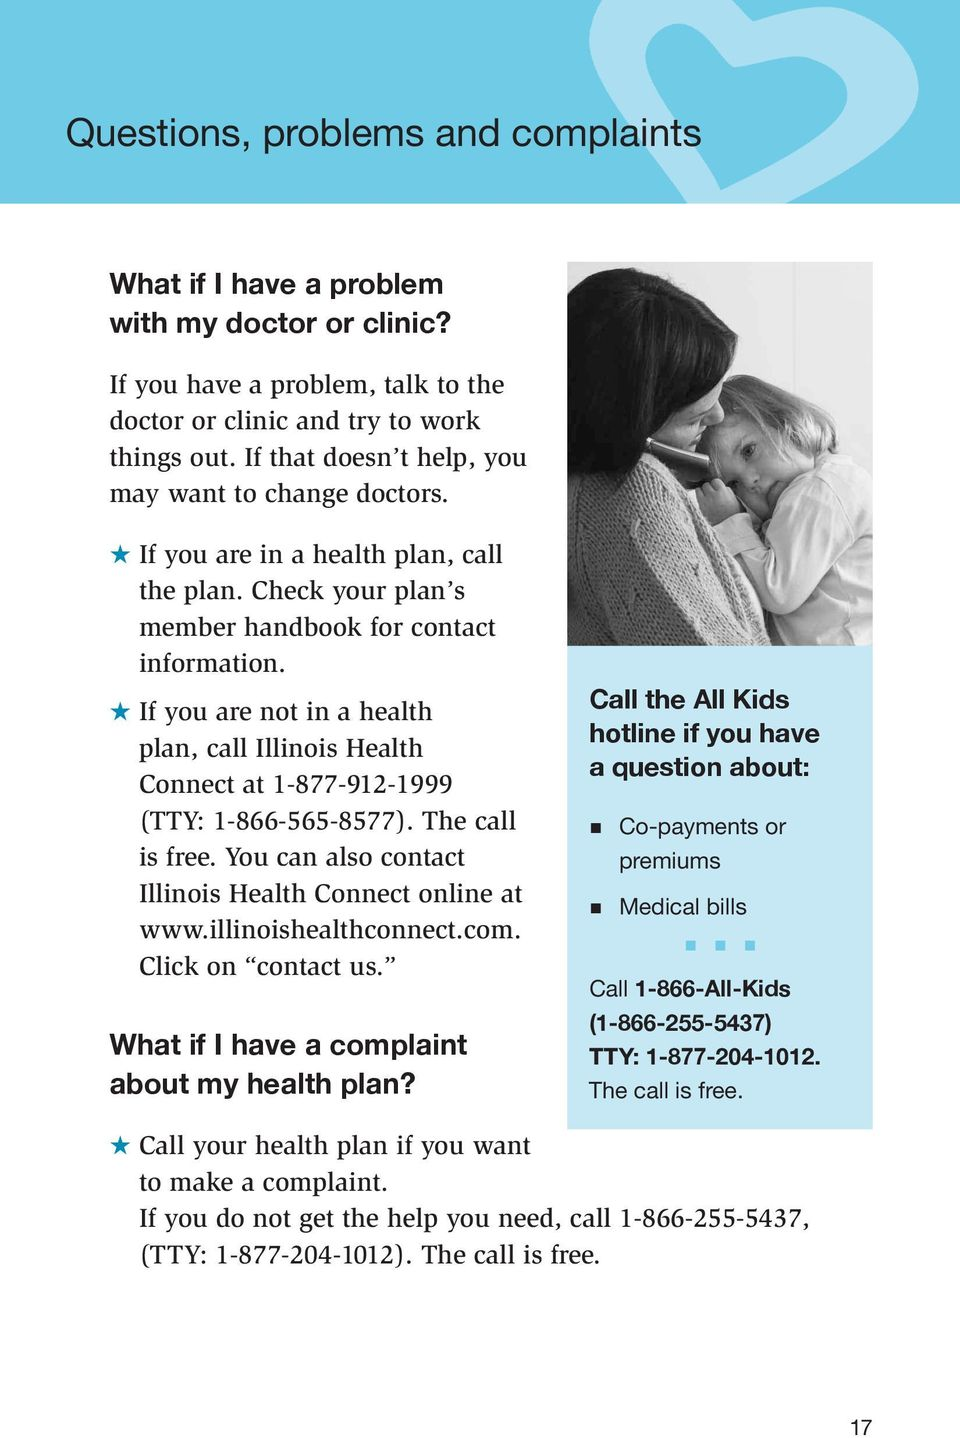 If you are not in a health plan, call Illinois Health Connect at 1-877-912-1999 (TTY: 1-866-565-8577). The call is free. You can also contact Illinois Health Connect online at www.